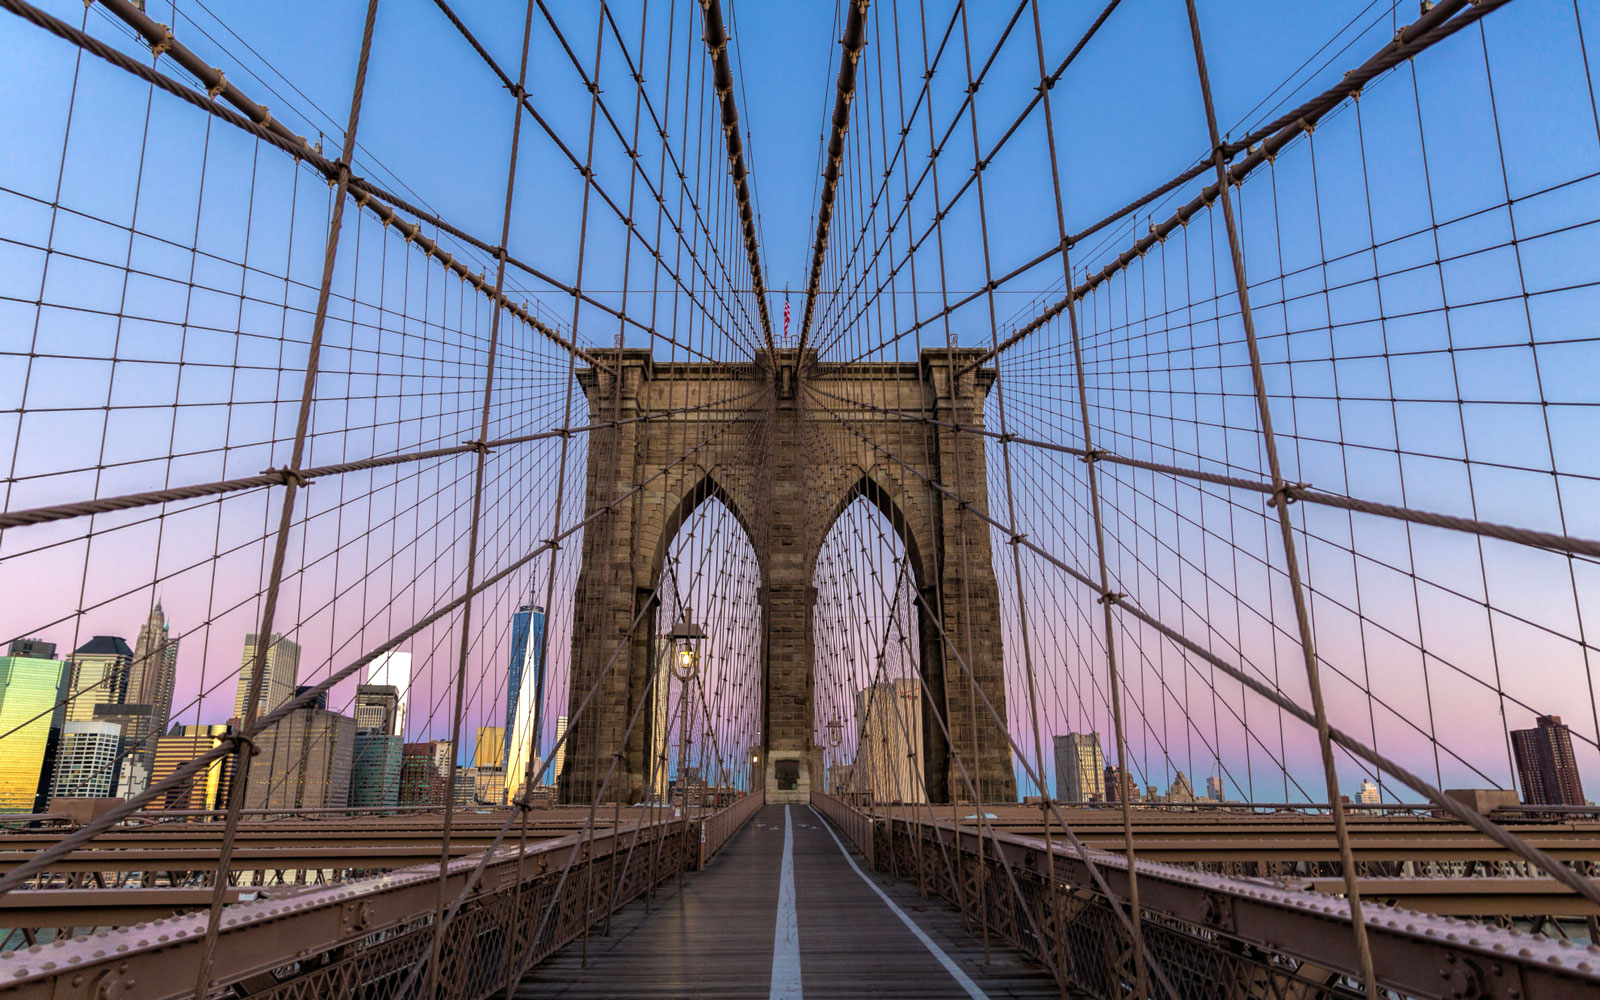 Brooklyn Bridge in New York City, NY